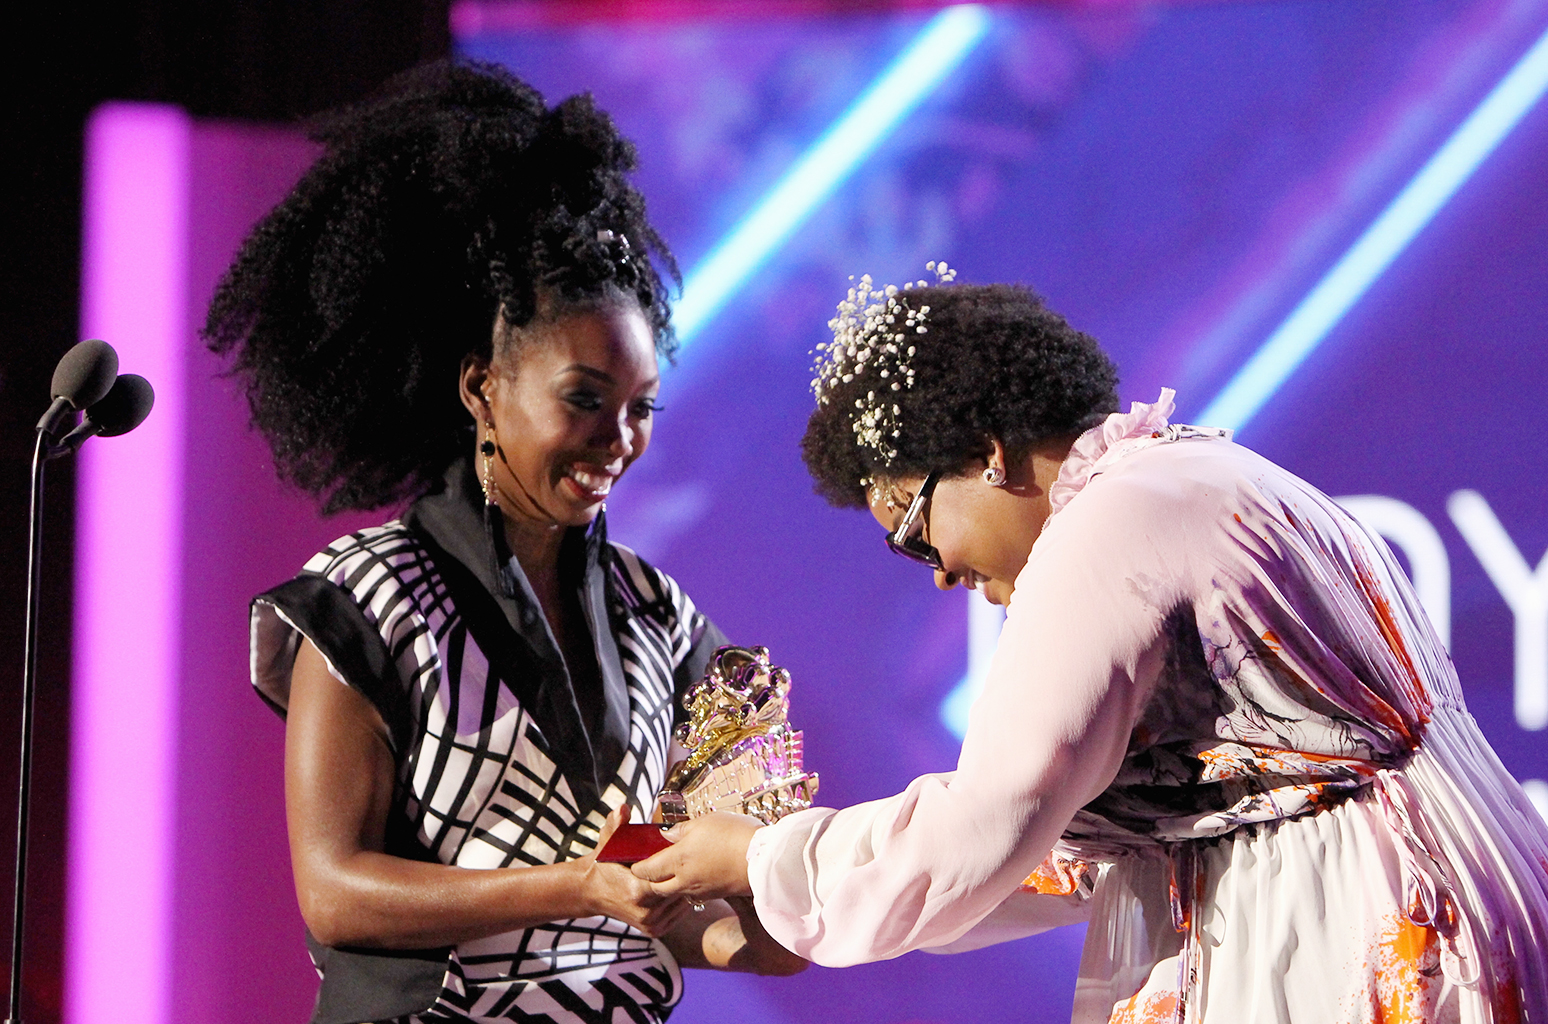 Brandy accepts the Lady of Soul Award from Jill Scott onstage during the 2016 Soul Train Music Awards at the Orleans Arena on Nov. 6, 2016 in Las Vegas.